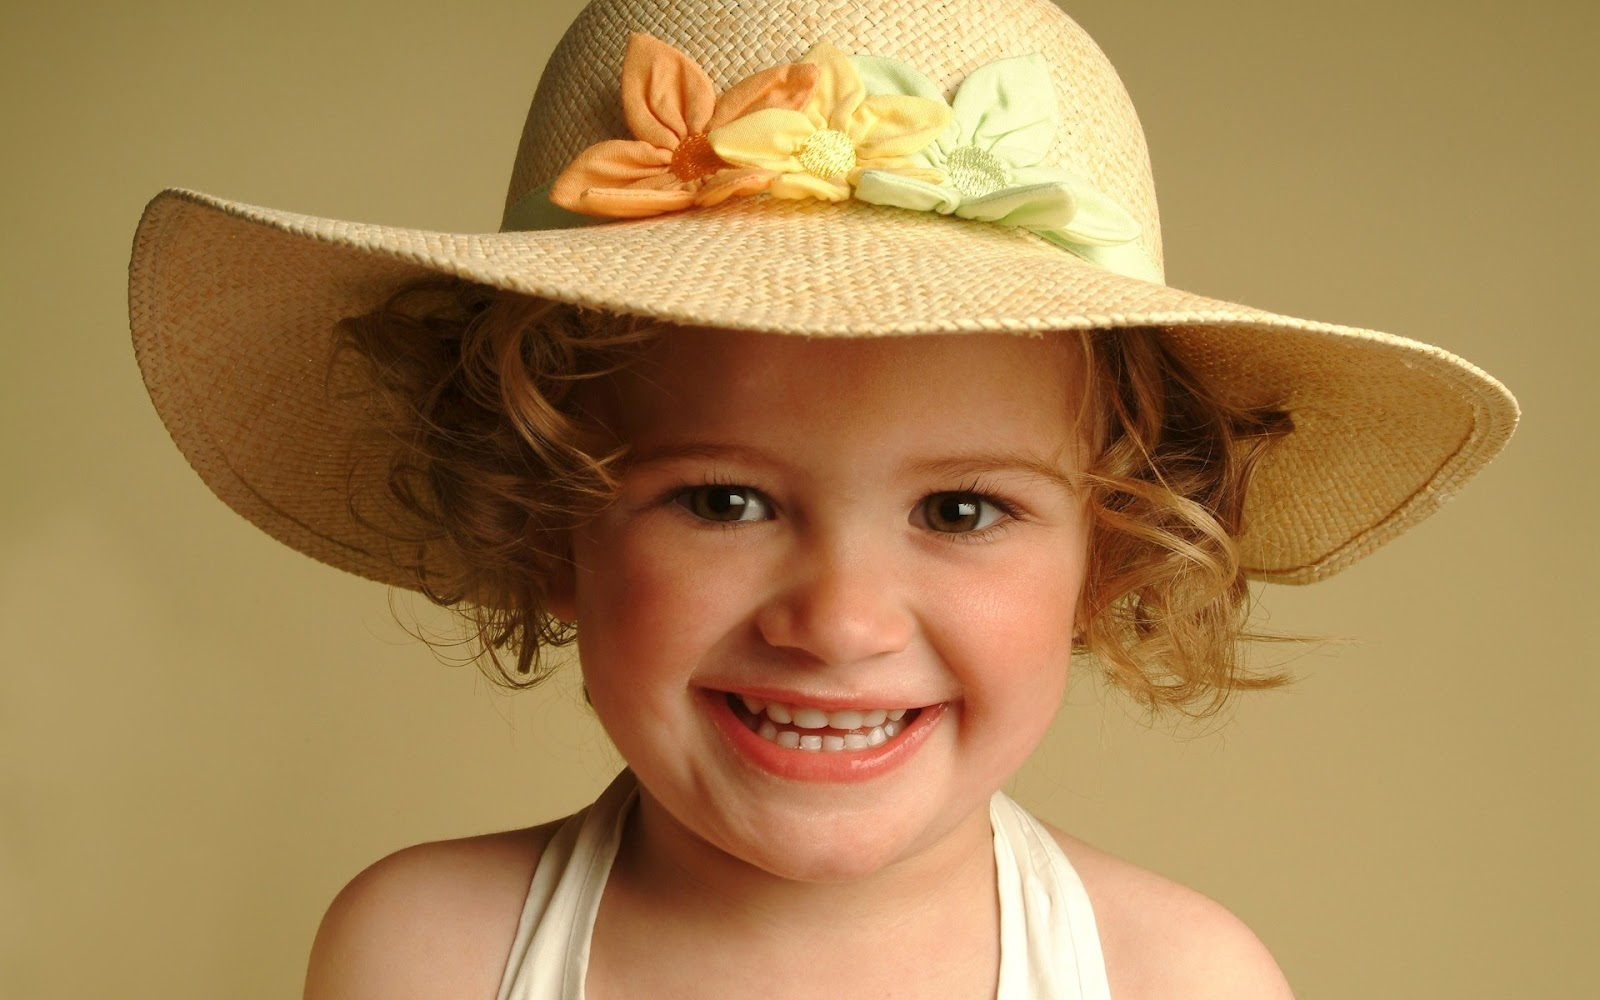 Baby Girl Wearing Hat Picture